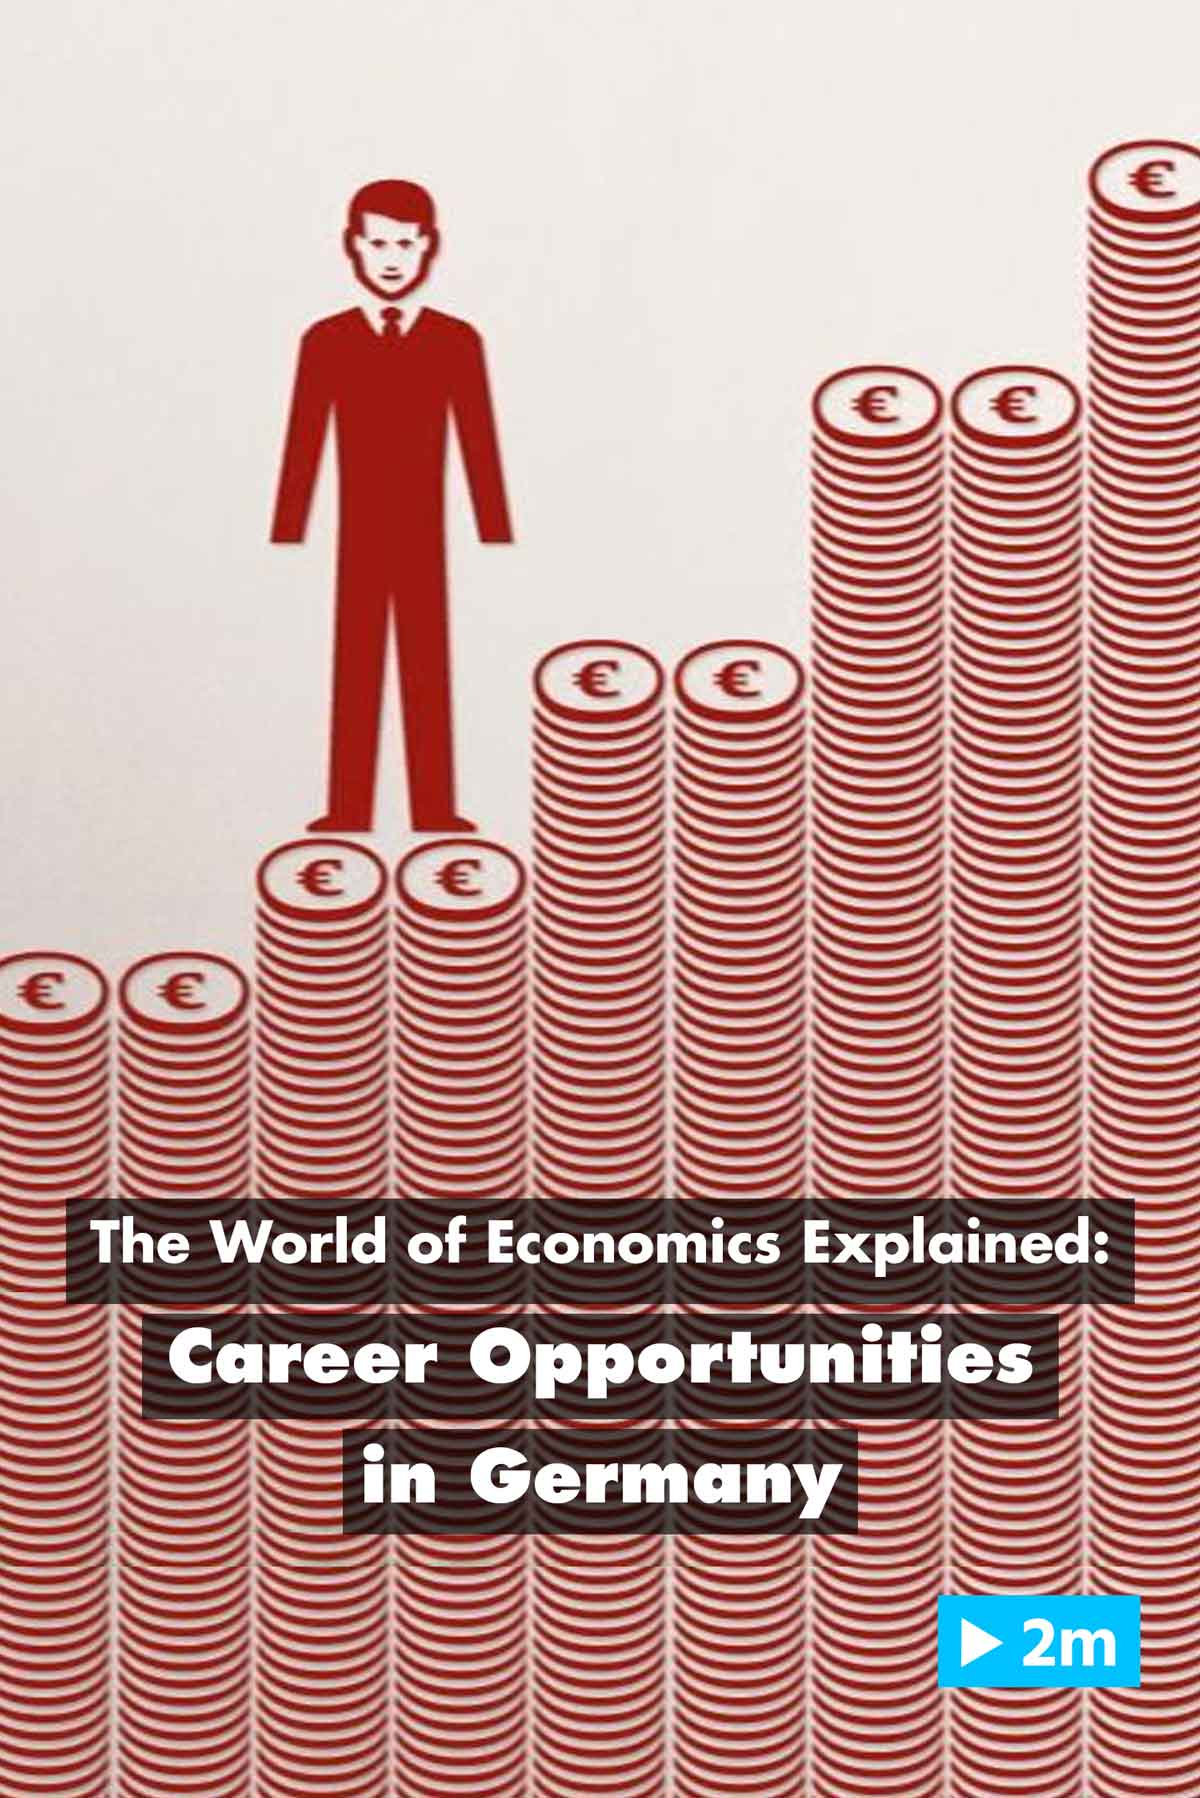 The World of Economics Explained: Career opportunities in Germany